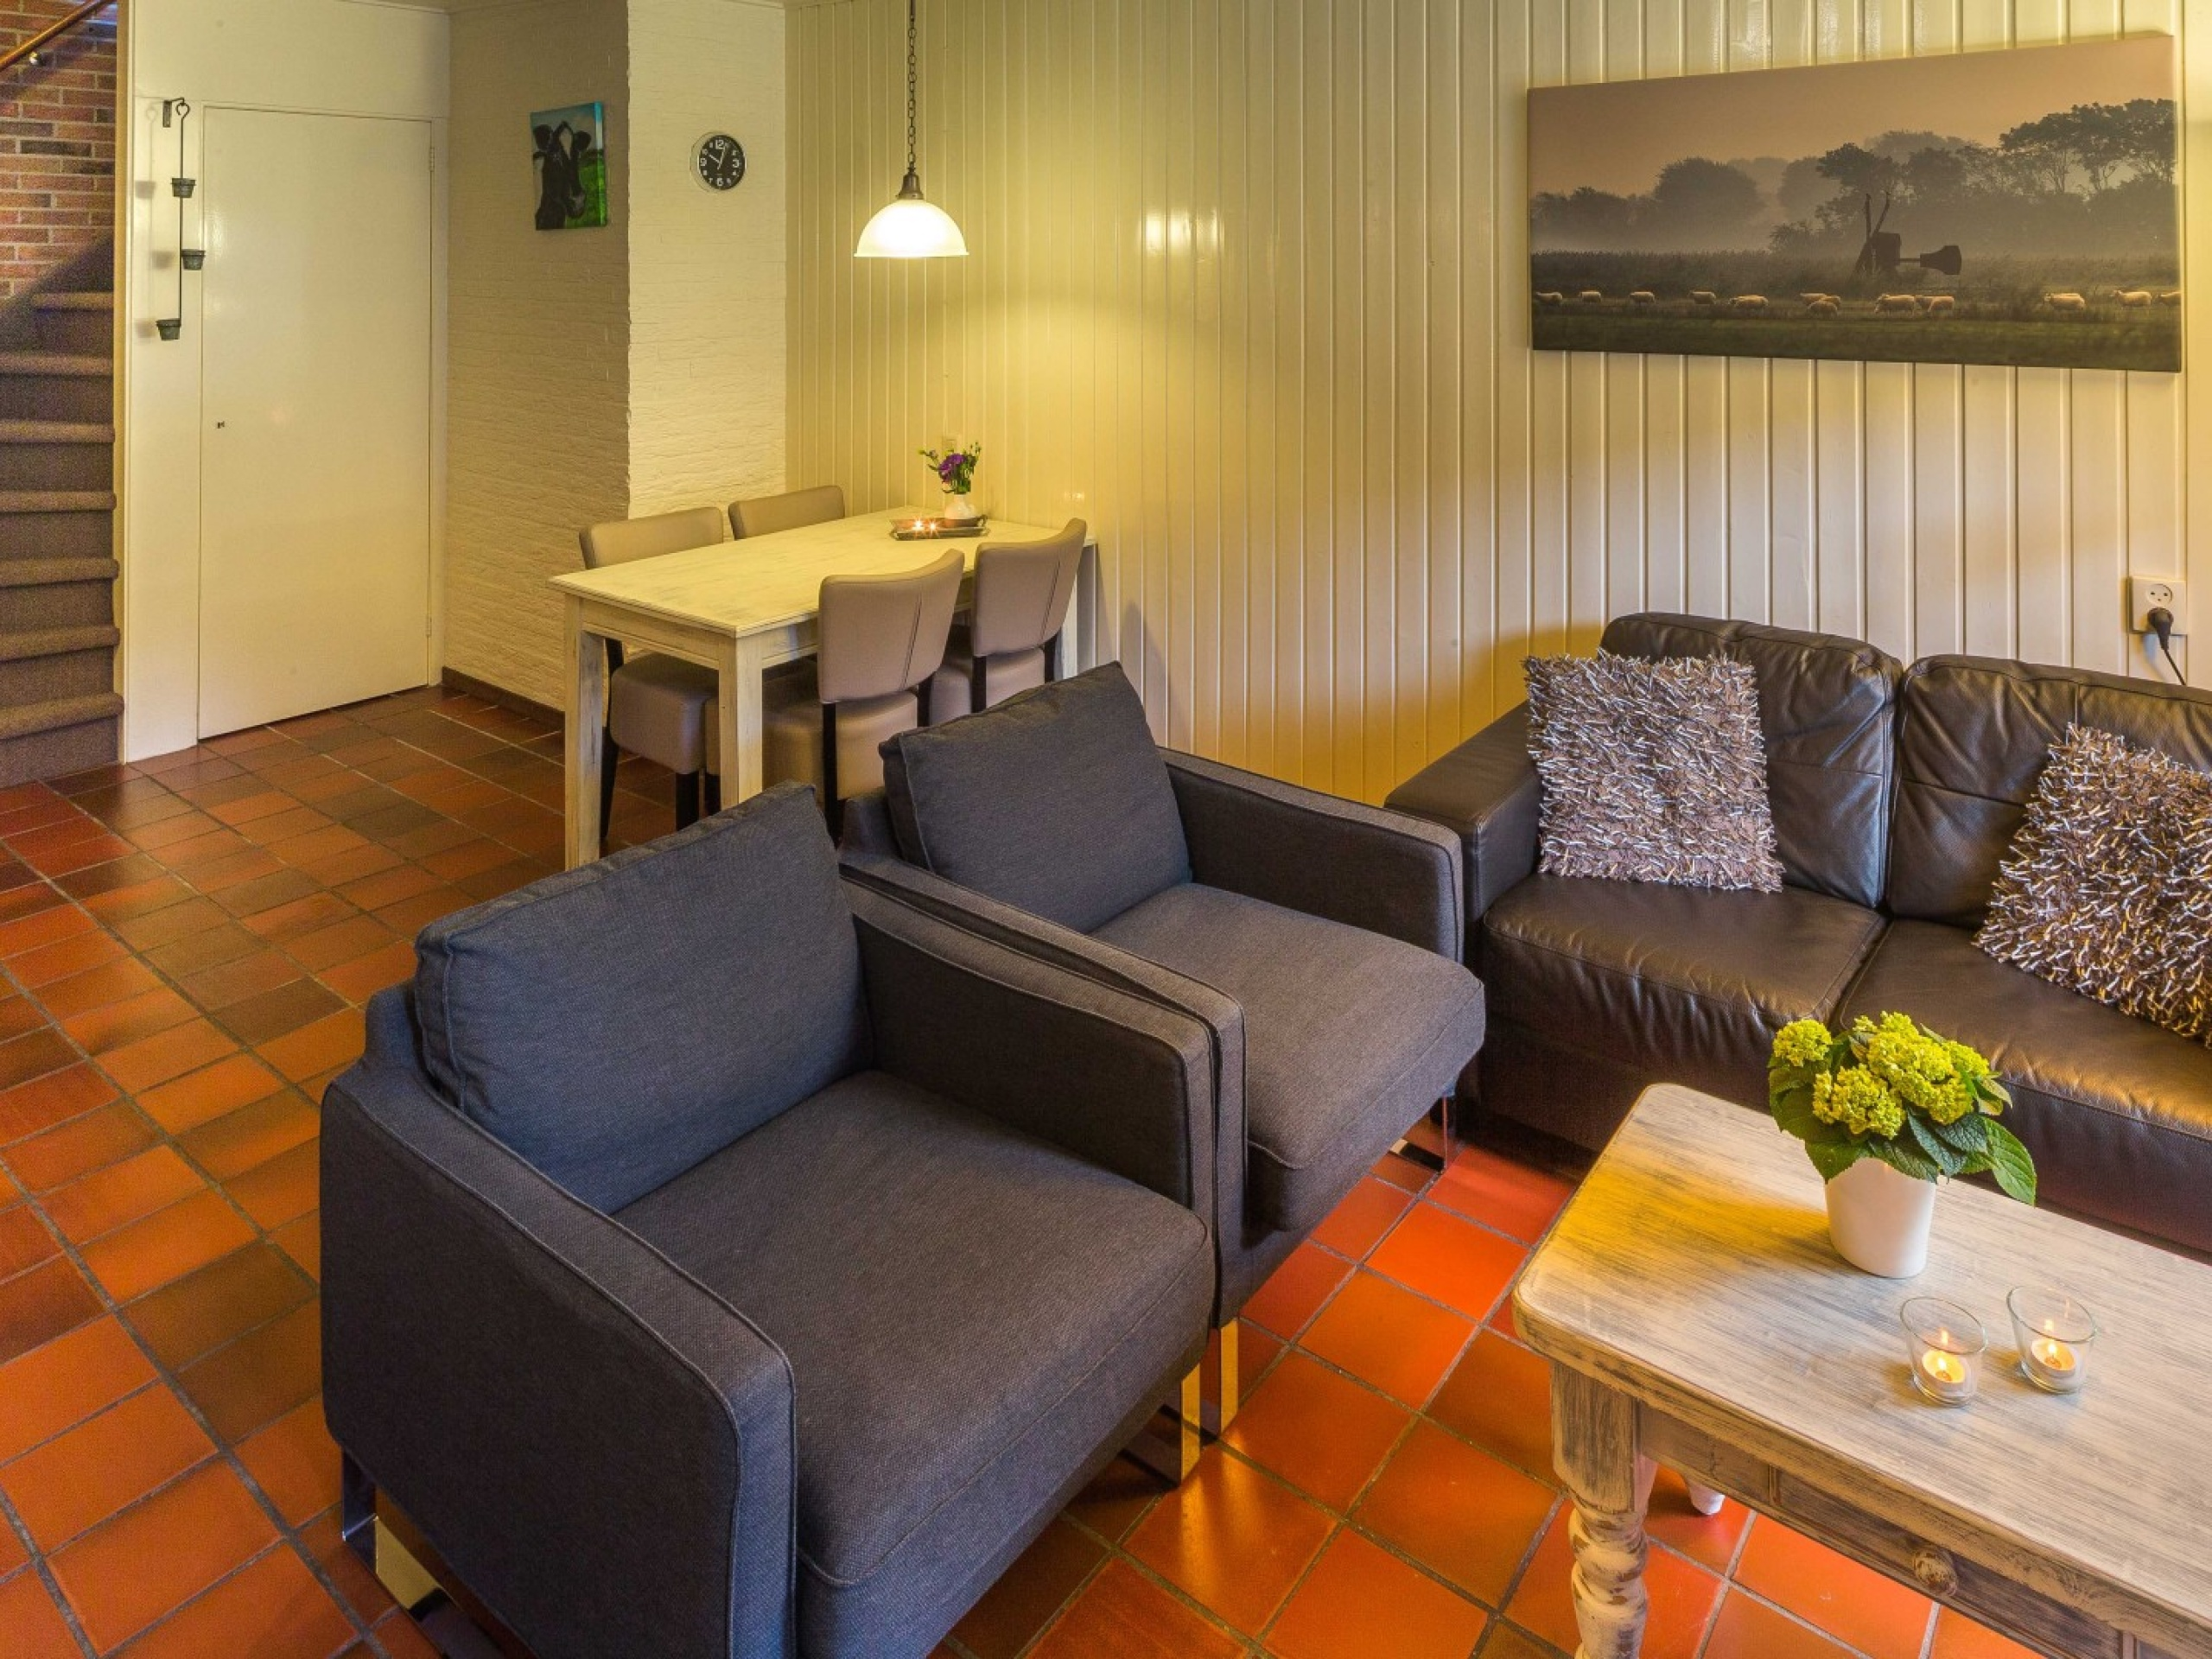 Cosy holiday home with comfortable beds in the centre of Den Burg